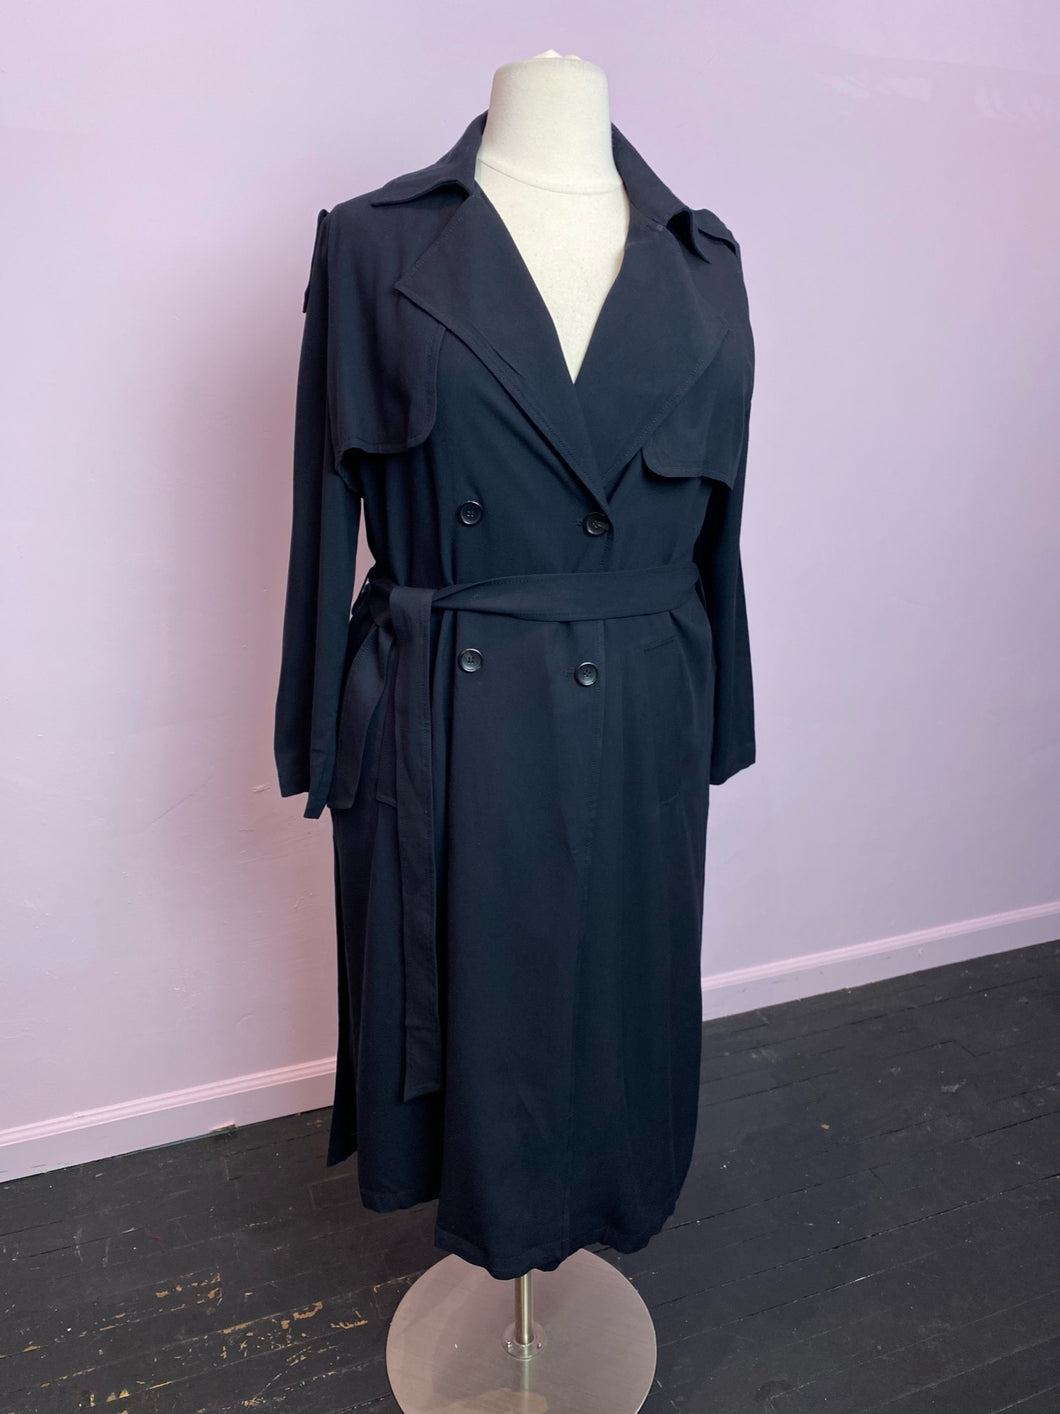 Long Black Trench Coat by H&M, Size 14